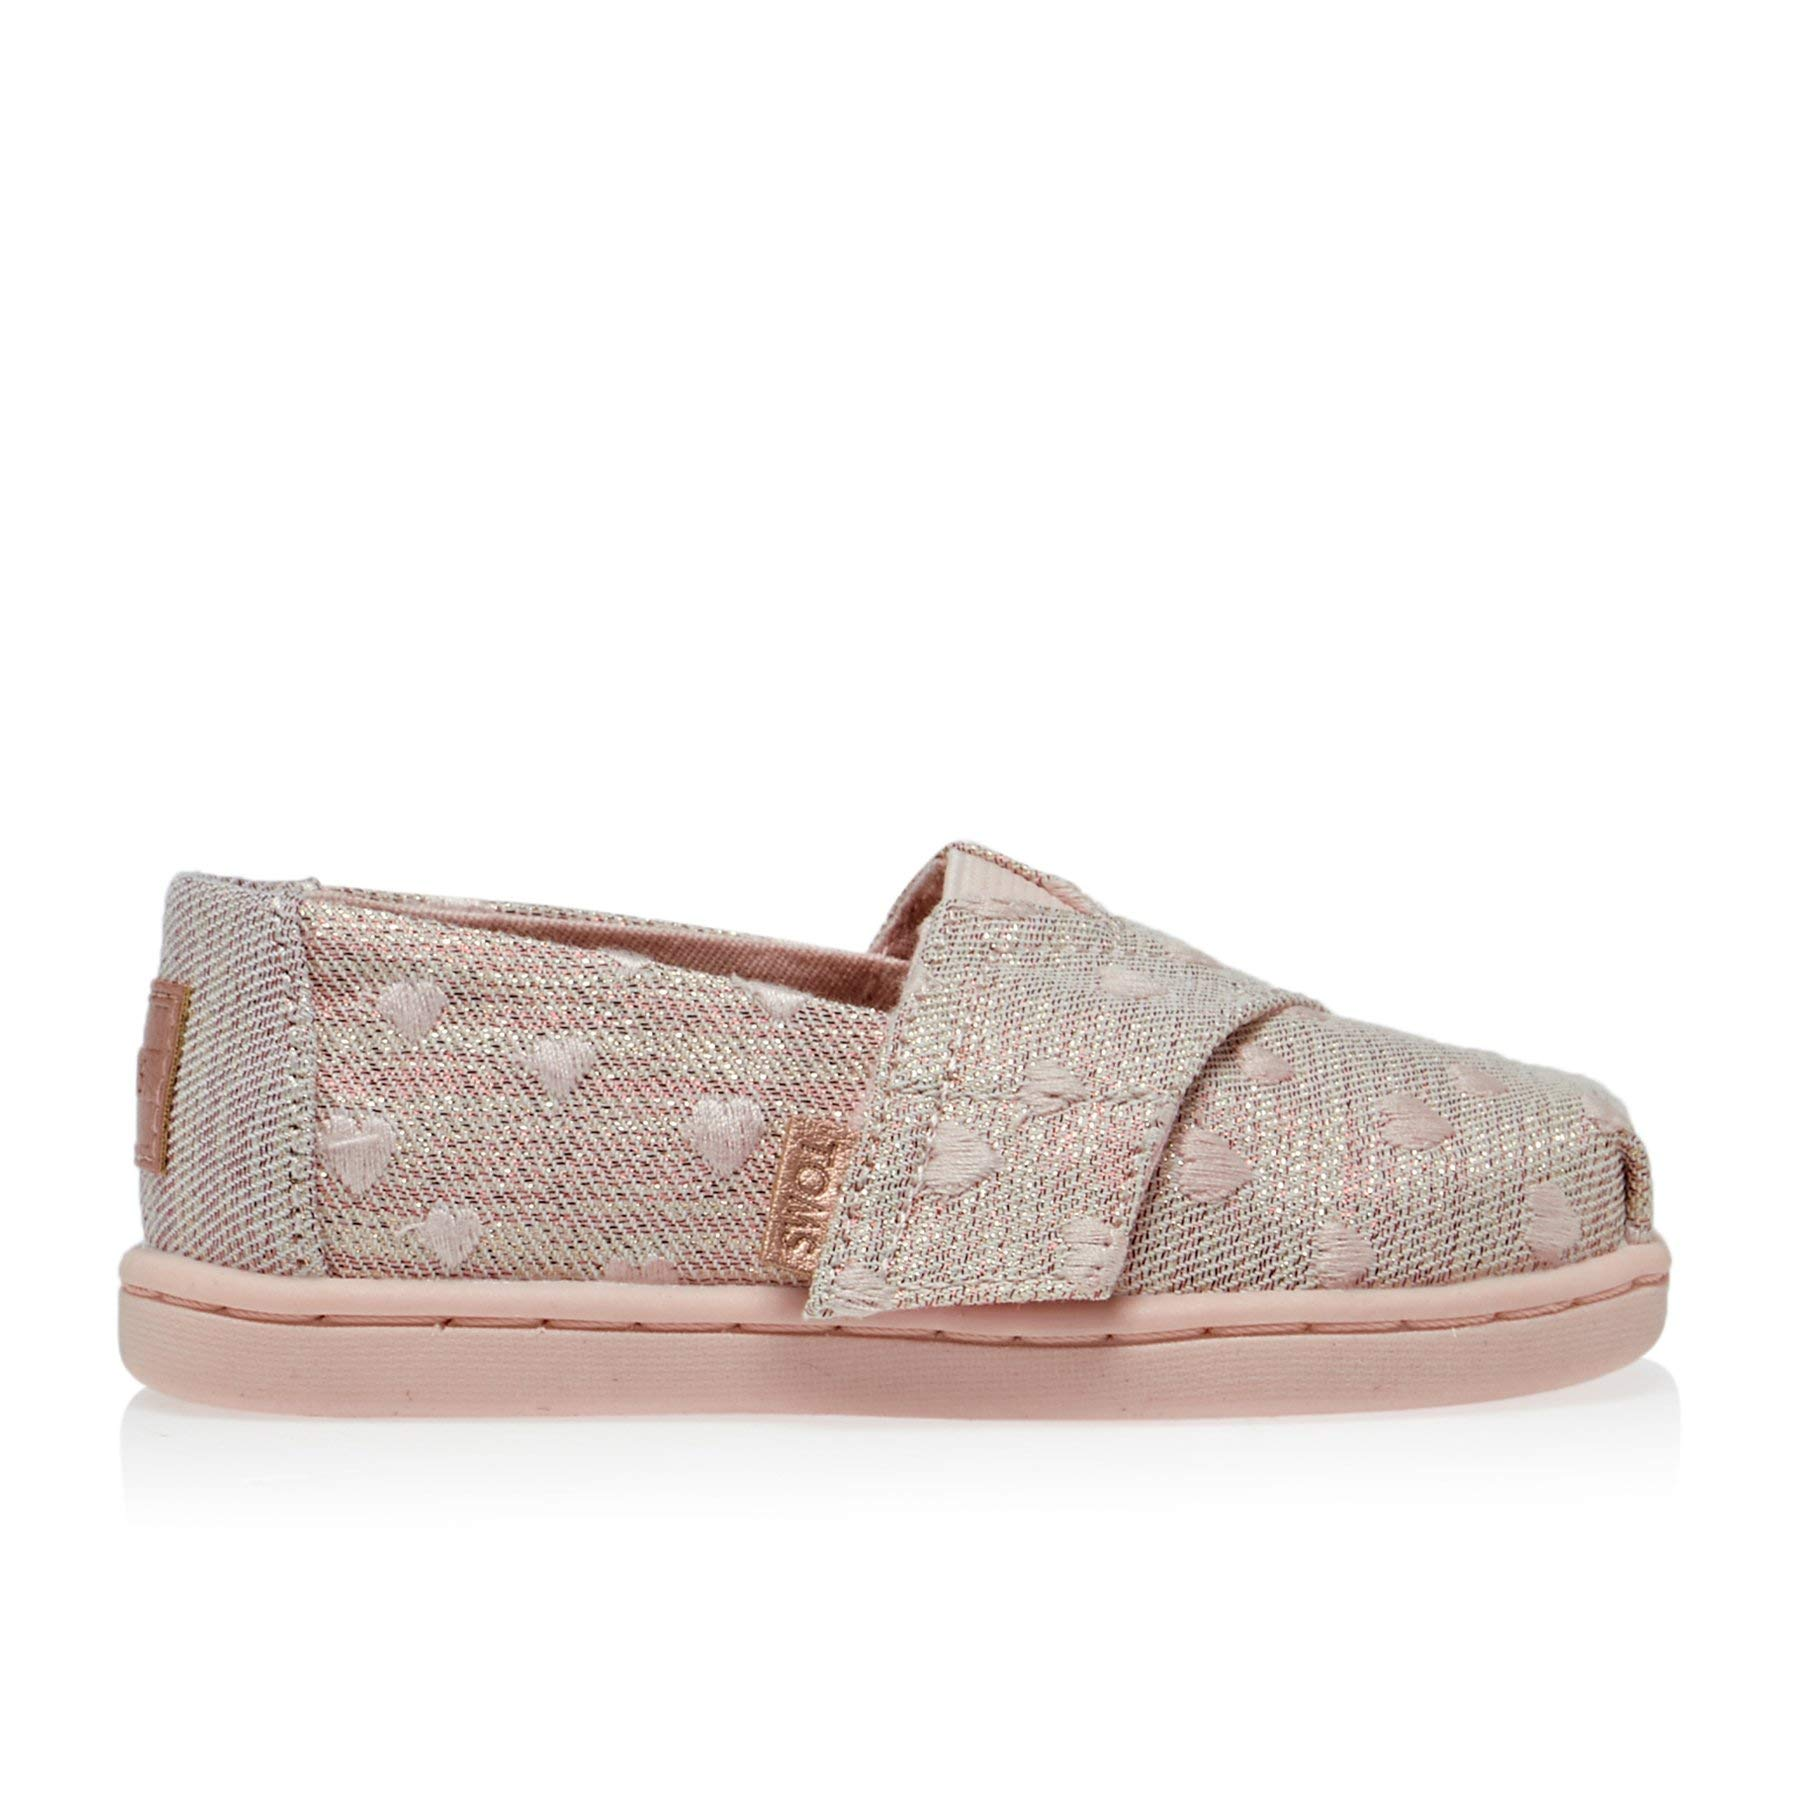 TOMS Kids Baby Girl's Alpargata (Toddler/Little Kid) Rose Cloud Heartsy Twill Glimmer Embroidery 11 M US Little Kid by TOMS Kids (Image #2)